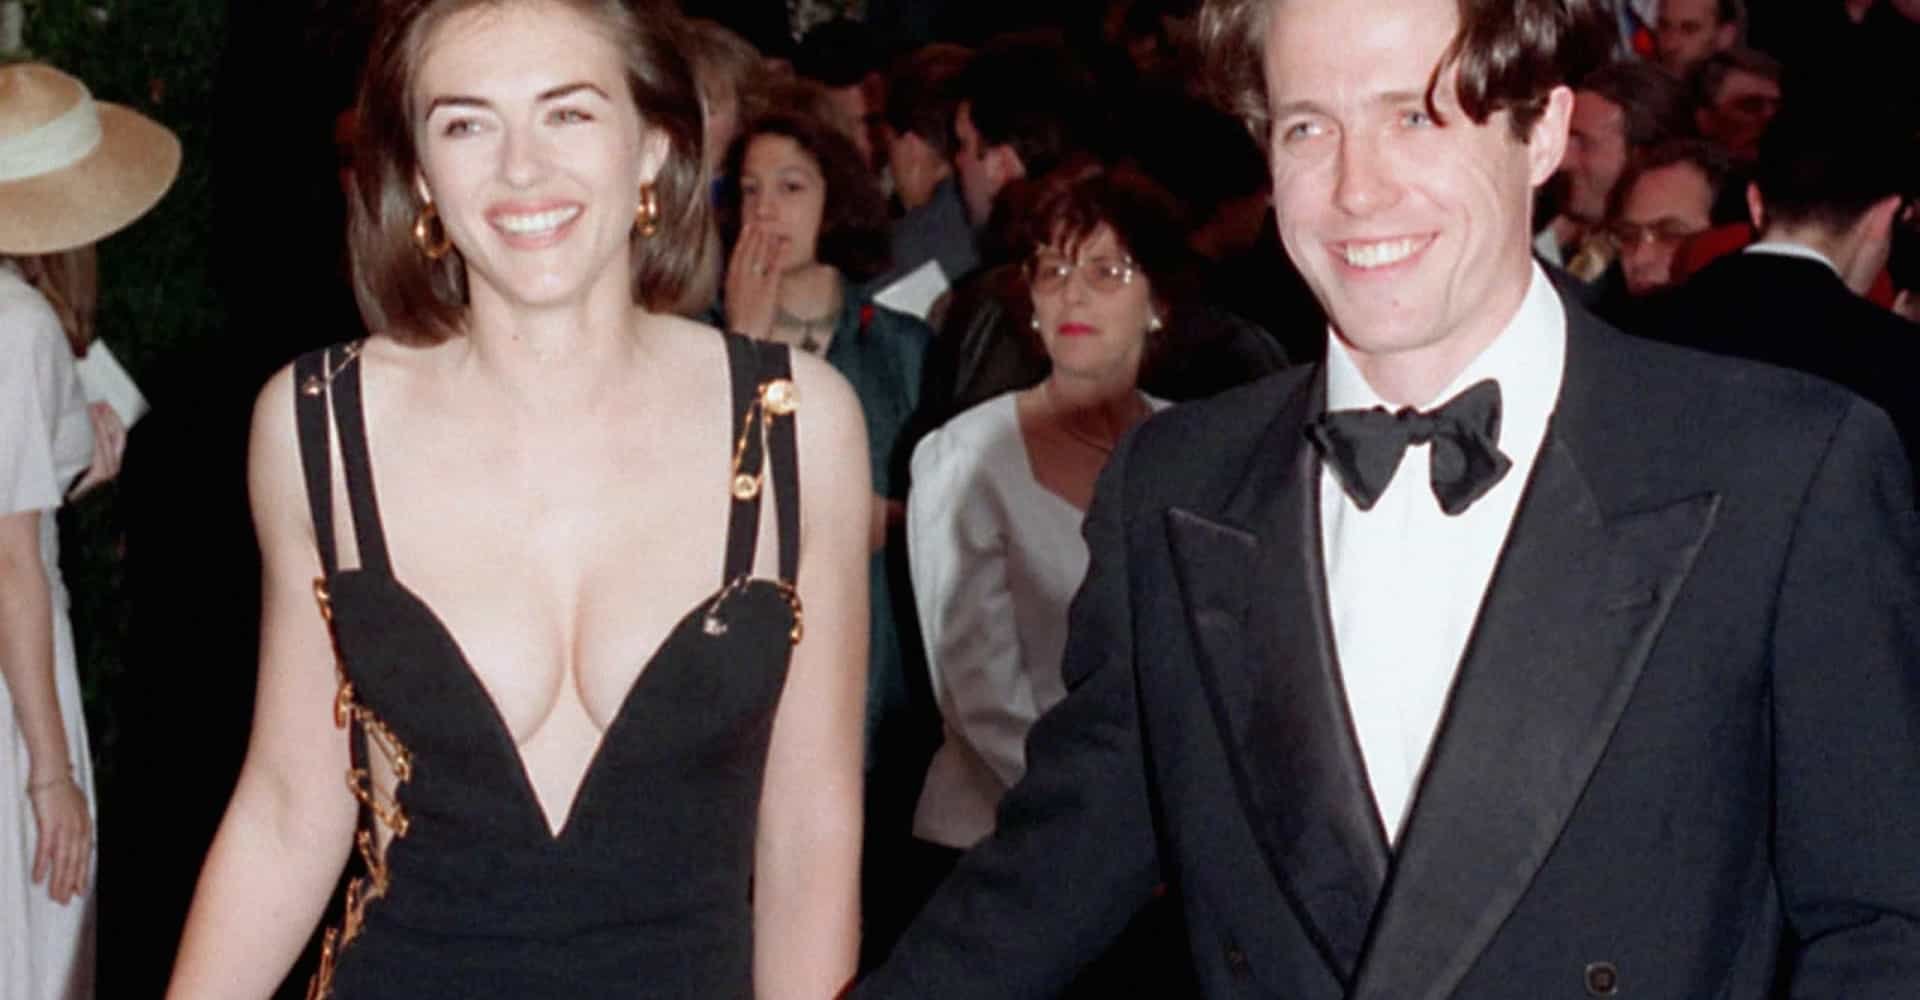 The most revealing dresses in celebrity history